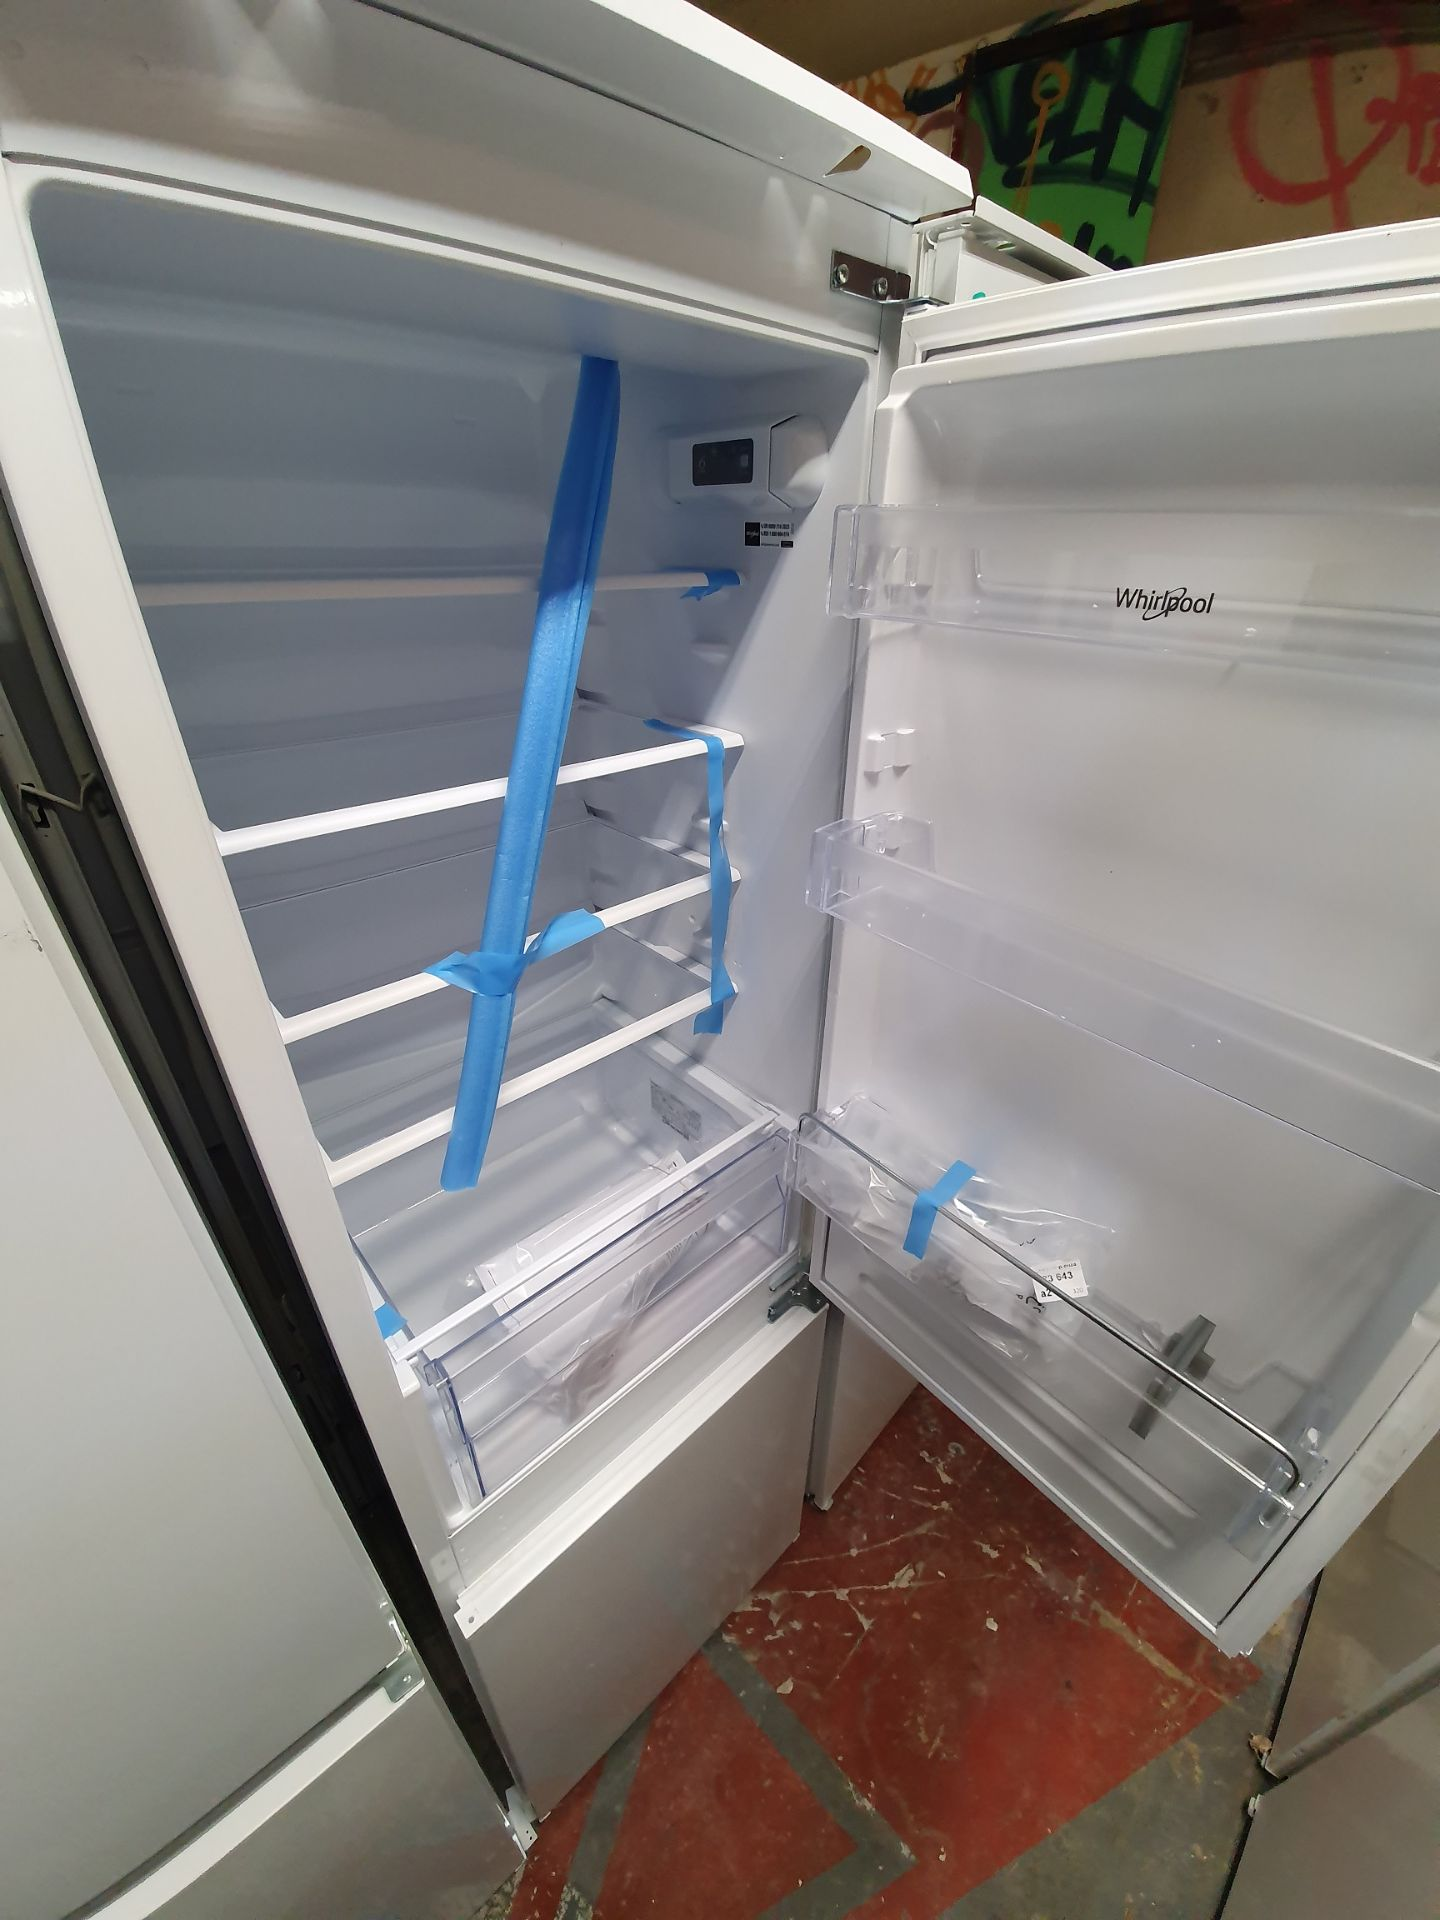 NEW/GRADED AND PACKAGED Prima PRRF208 Tall 177.6cm Integrated Larder Fridge (Slight external - Image 10 of 14